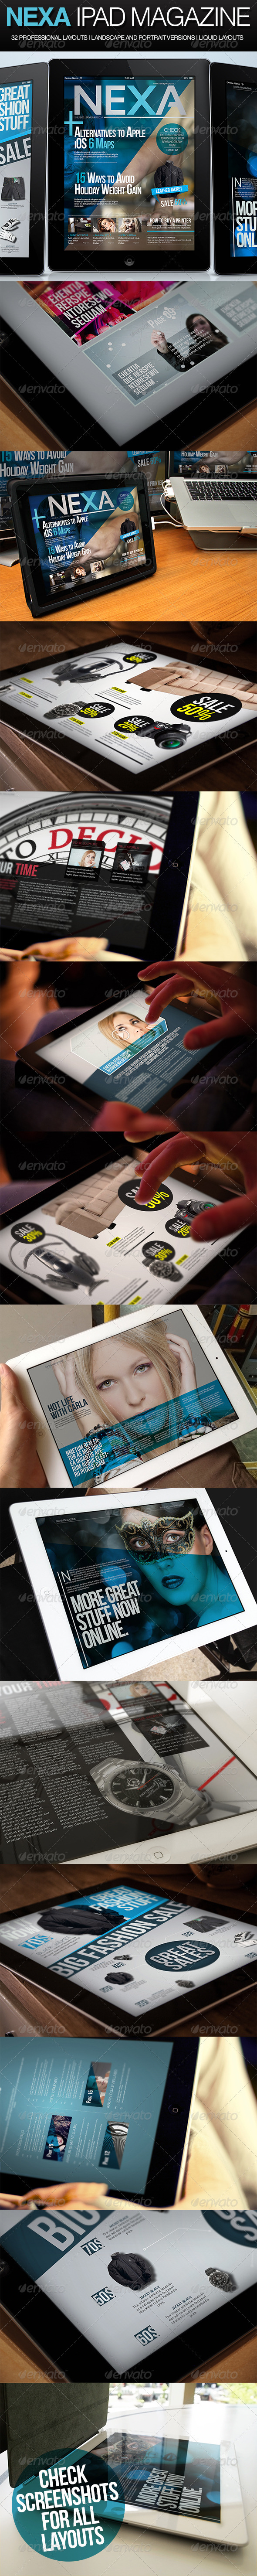 Nexa iPad Magazine - Magazines Print Templates